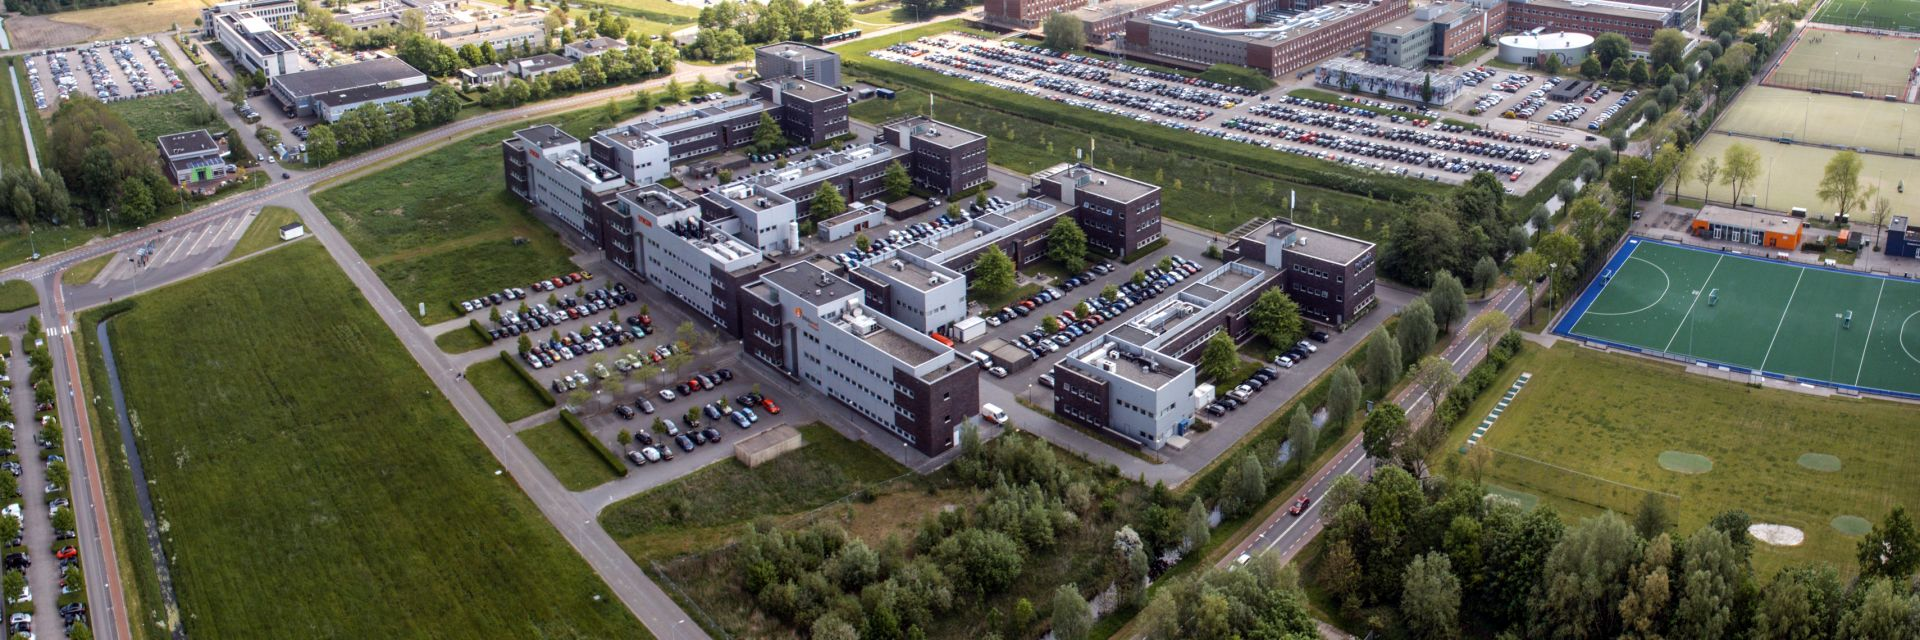 6.5 milion more RIG- investments in Zernike Campus Groningen